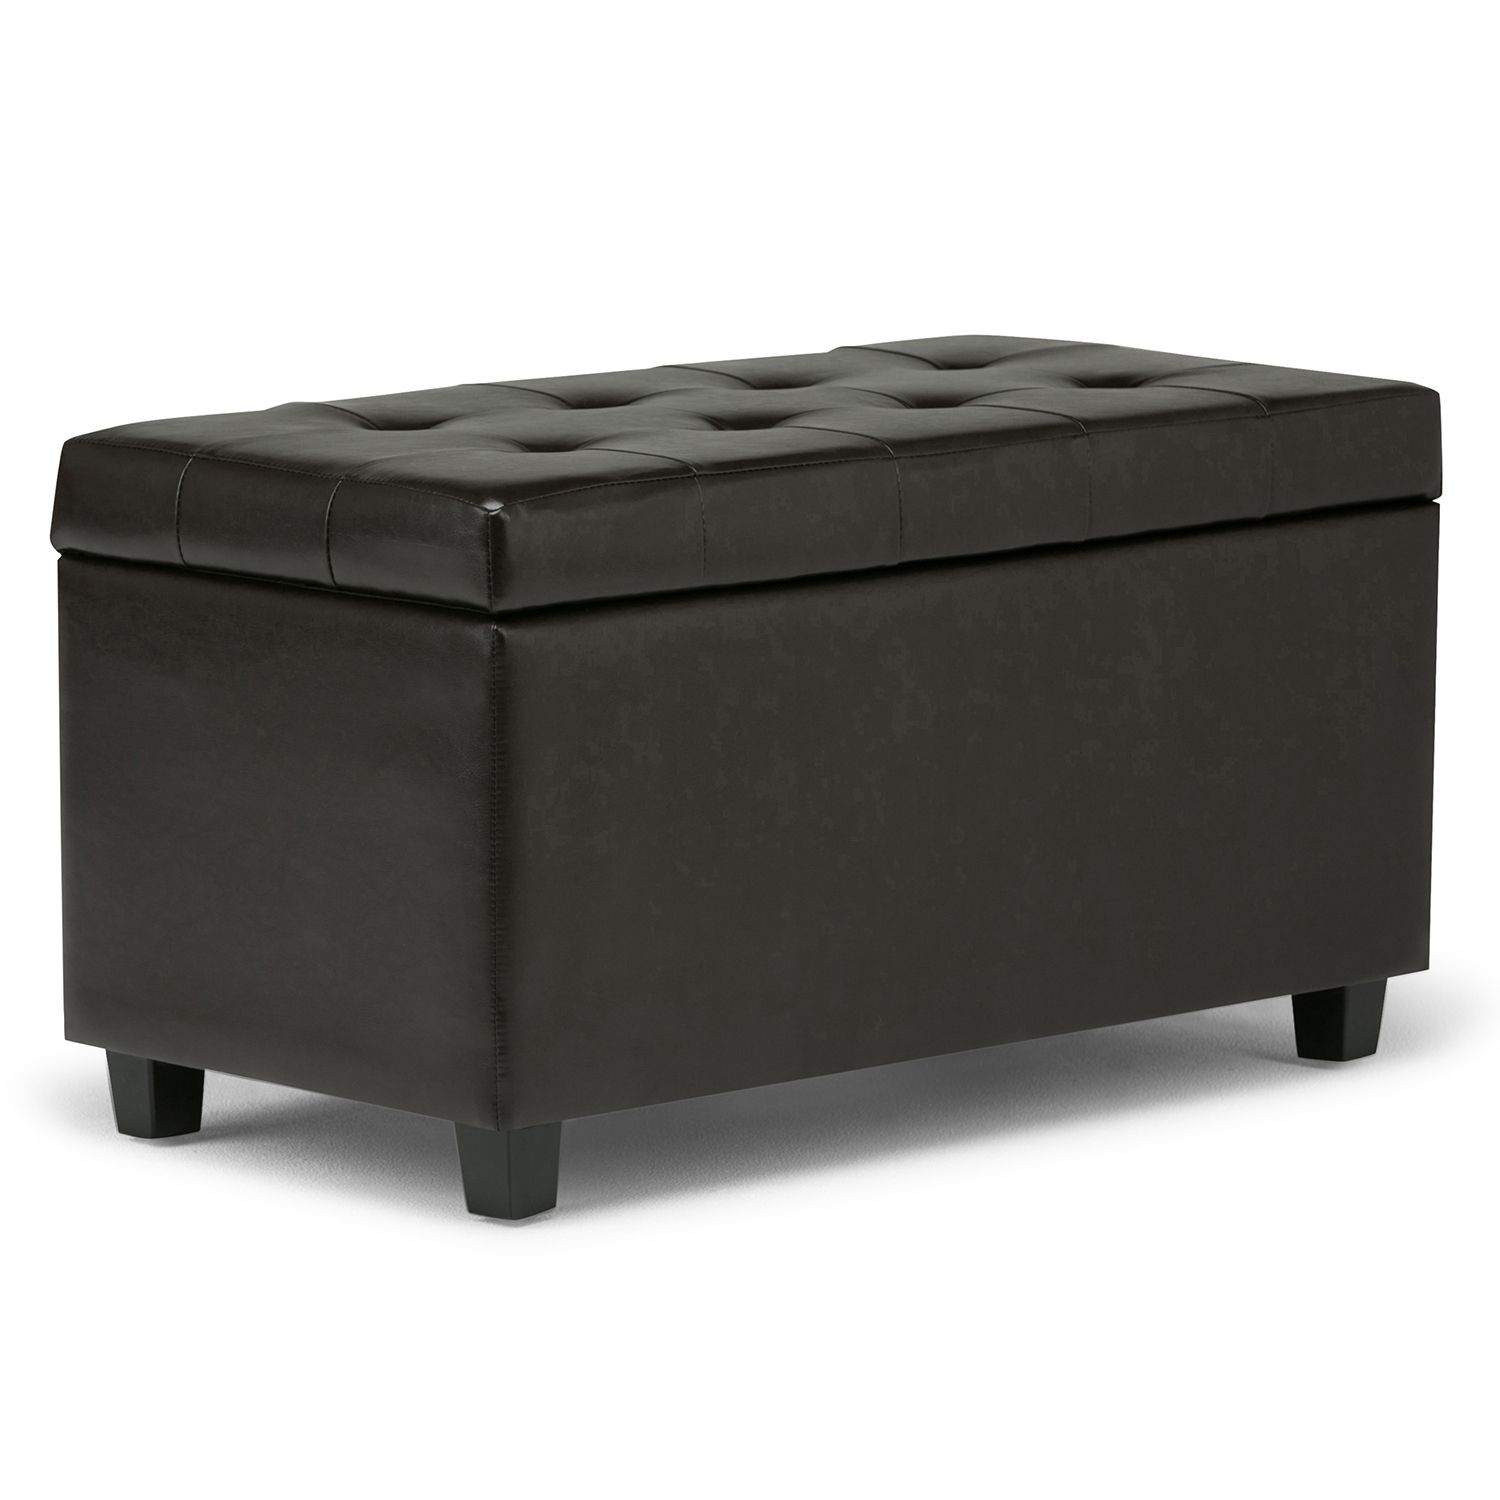 Simpli Home Cosmopolitan Rectangular Storage Ottoman Bench